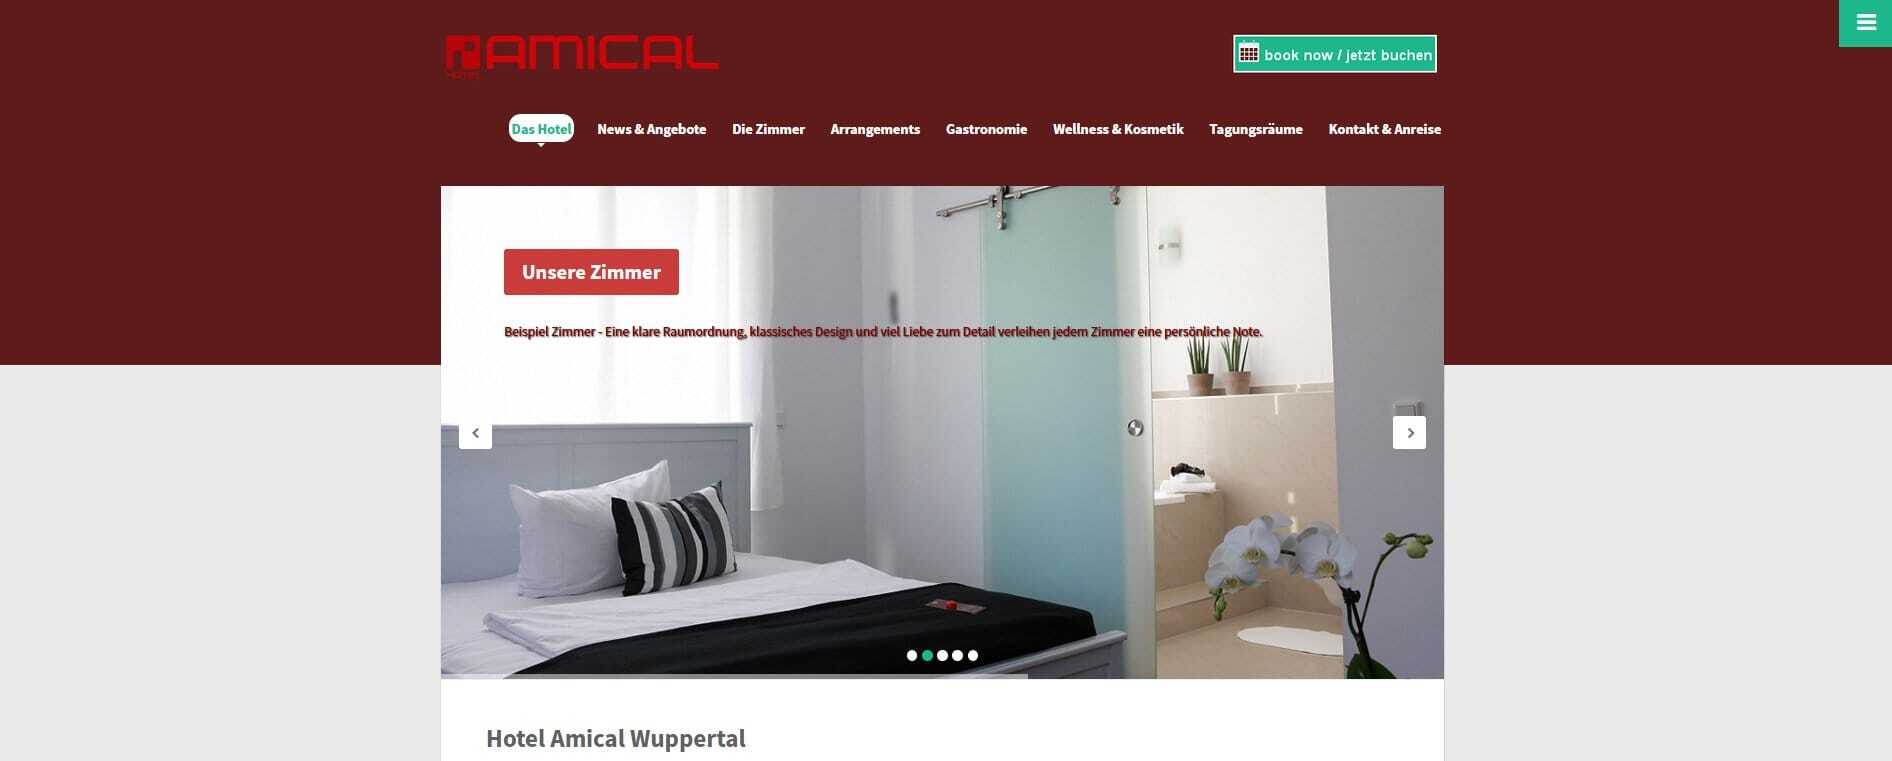 Portfolio archiv it bergischesland webdesigner for Hotel amical wuppertal